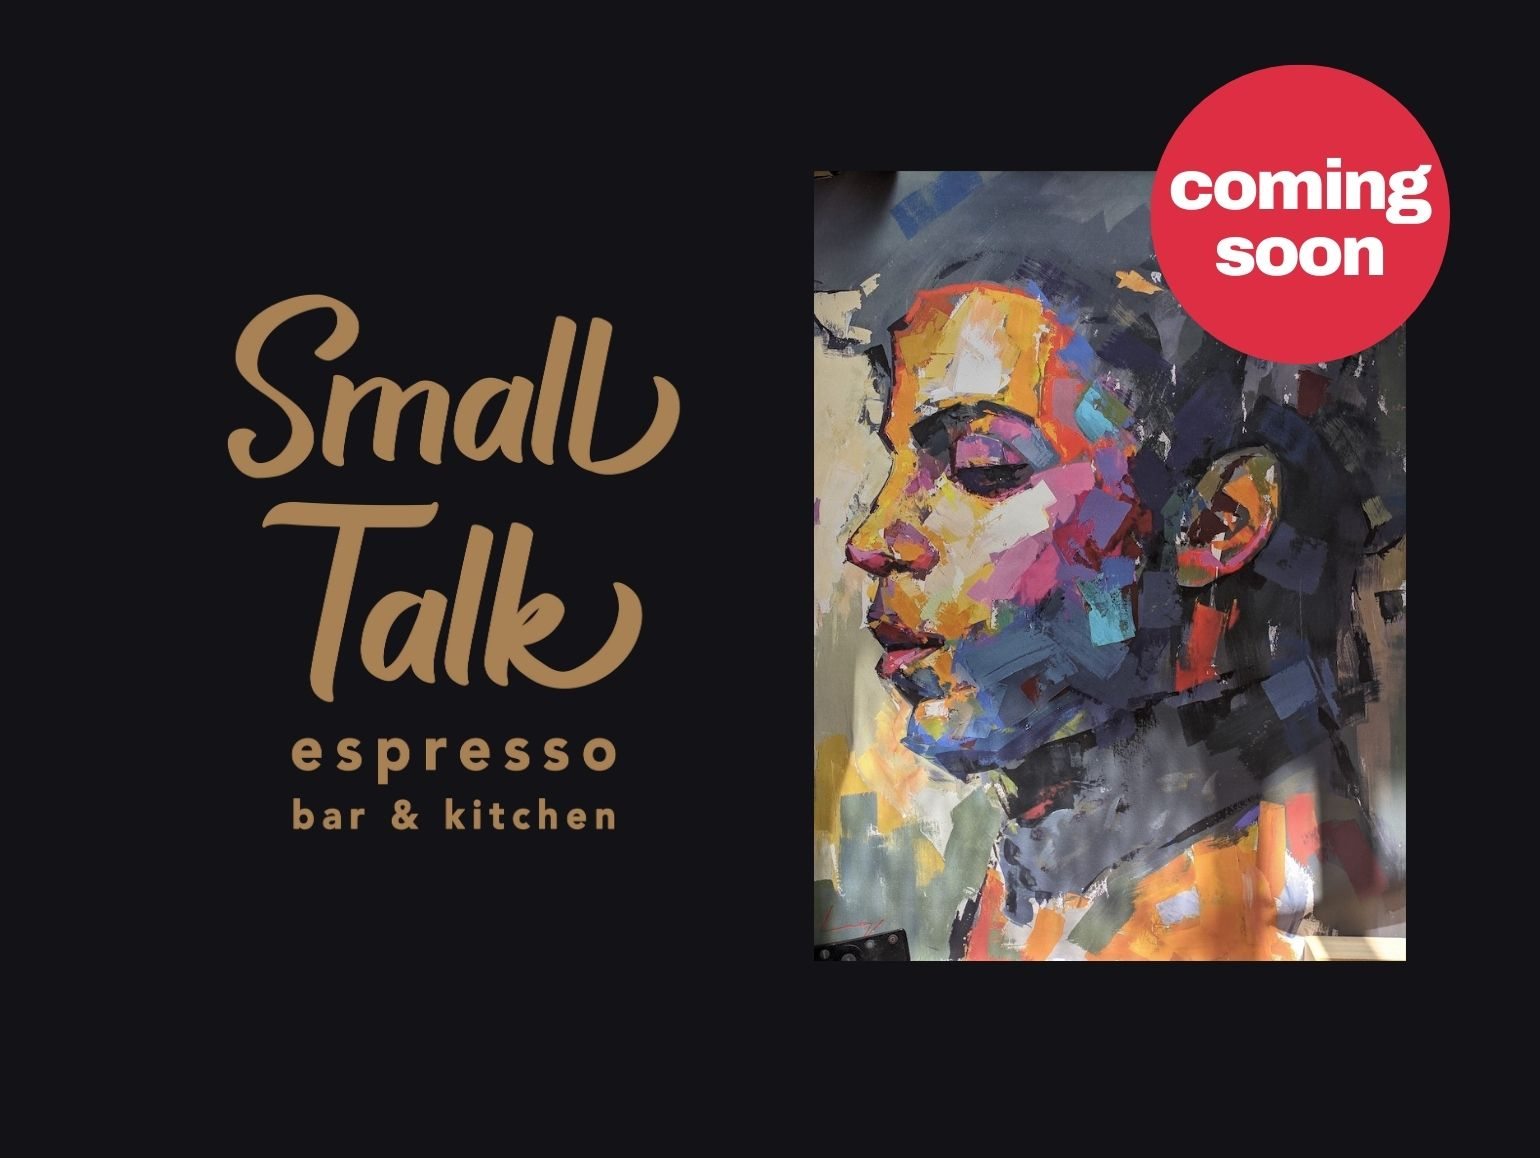 Small Talk Waterloo coming soon